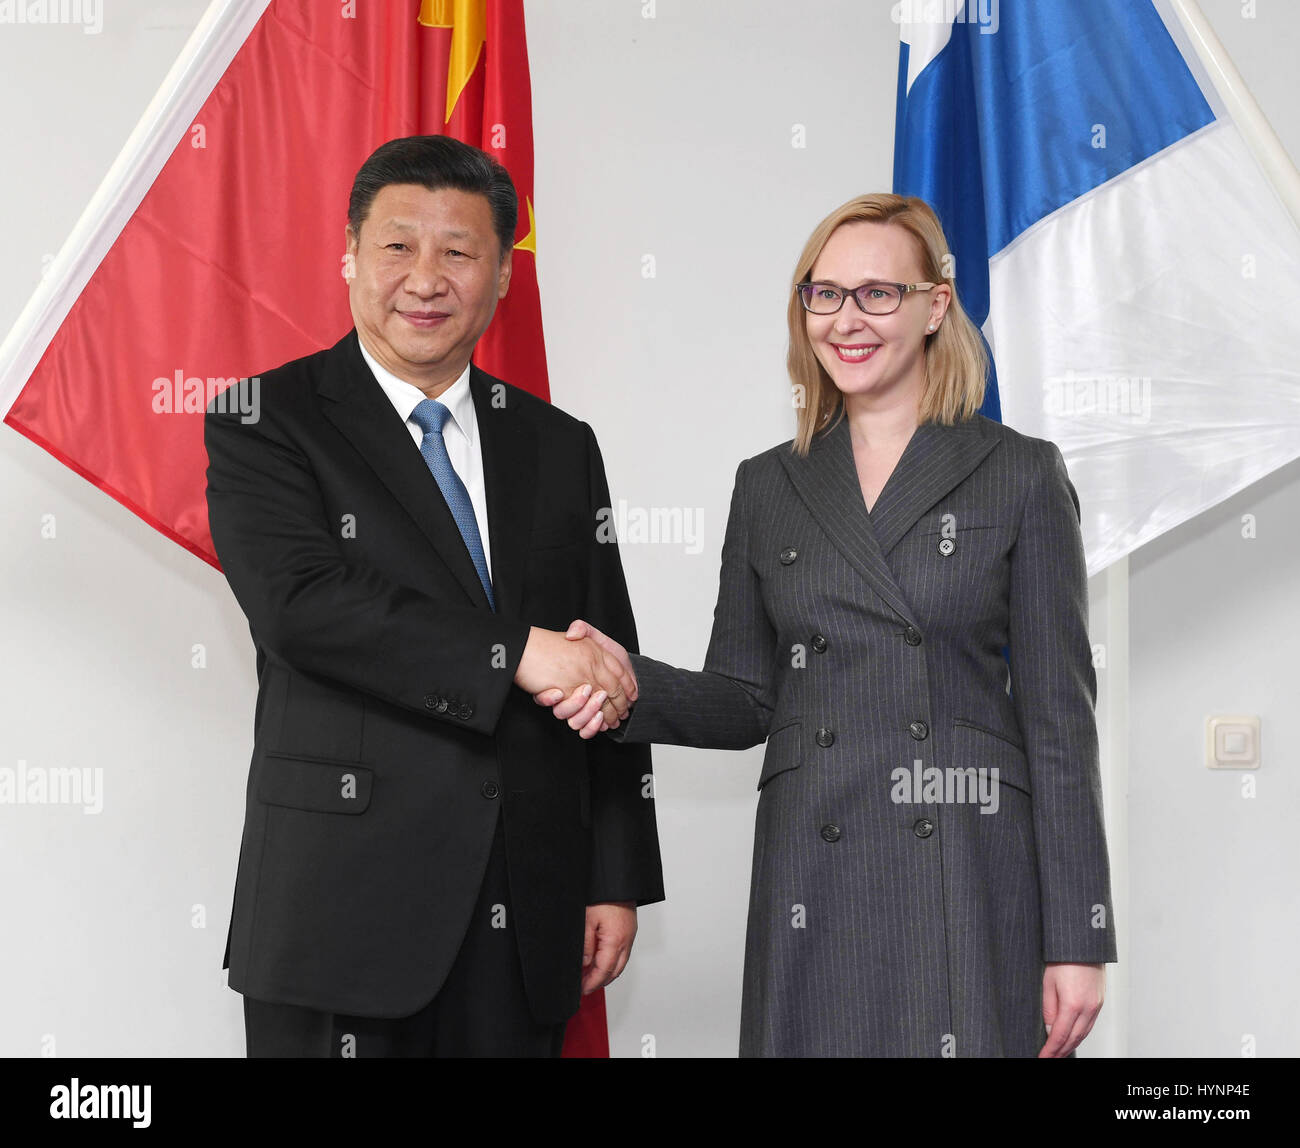 Helsinki, Finland. 5th Apr, 2017. Chinese President Xi Jinping (L) meets with Speaker of the Finnish Parliament Stock Photo